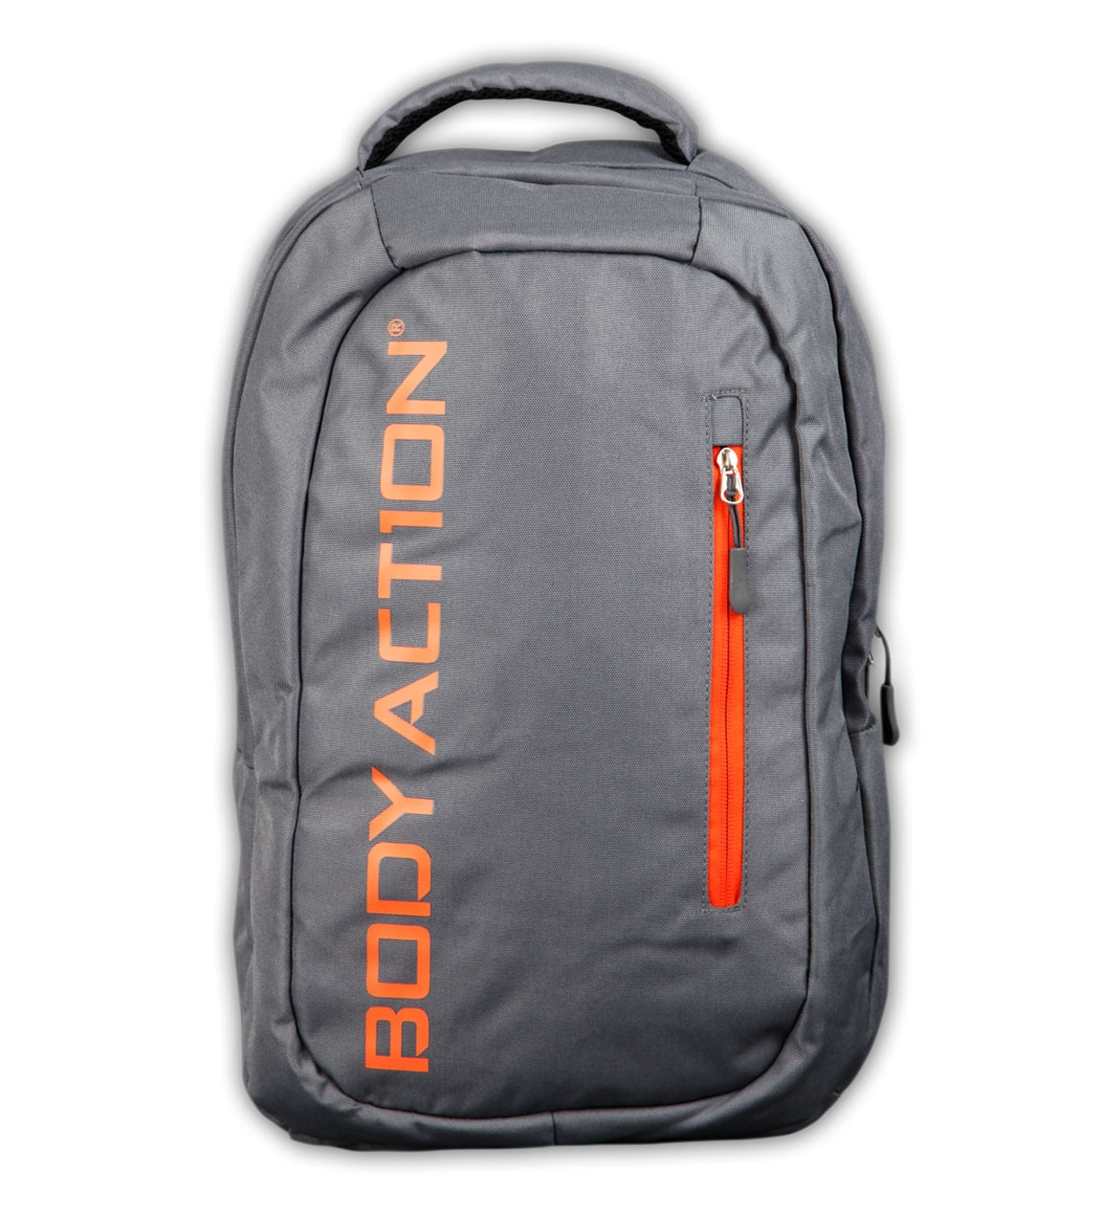 Body Action Σακίδιο Πλάτης Fw15 Logo Sports Backpack 096501